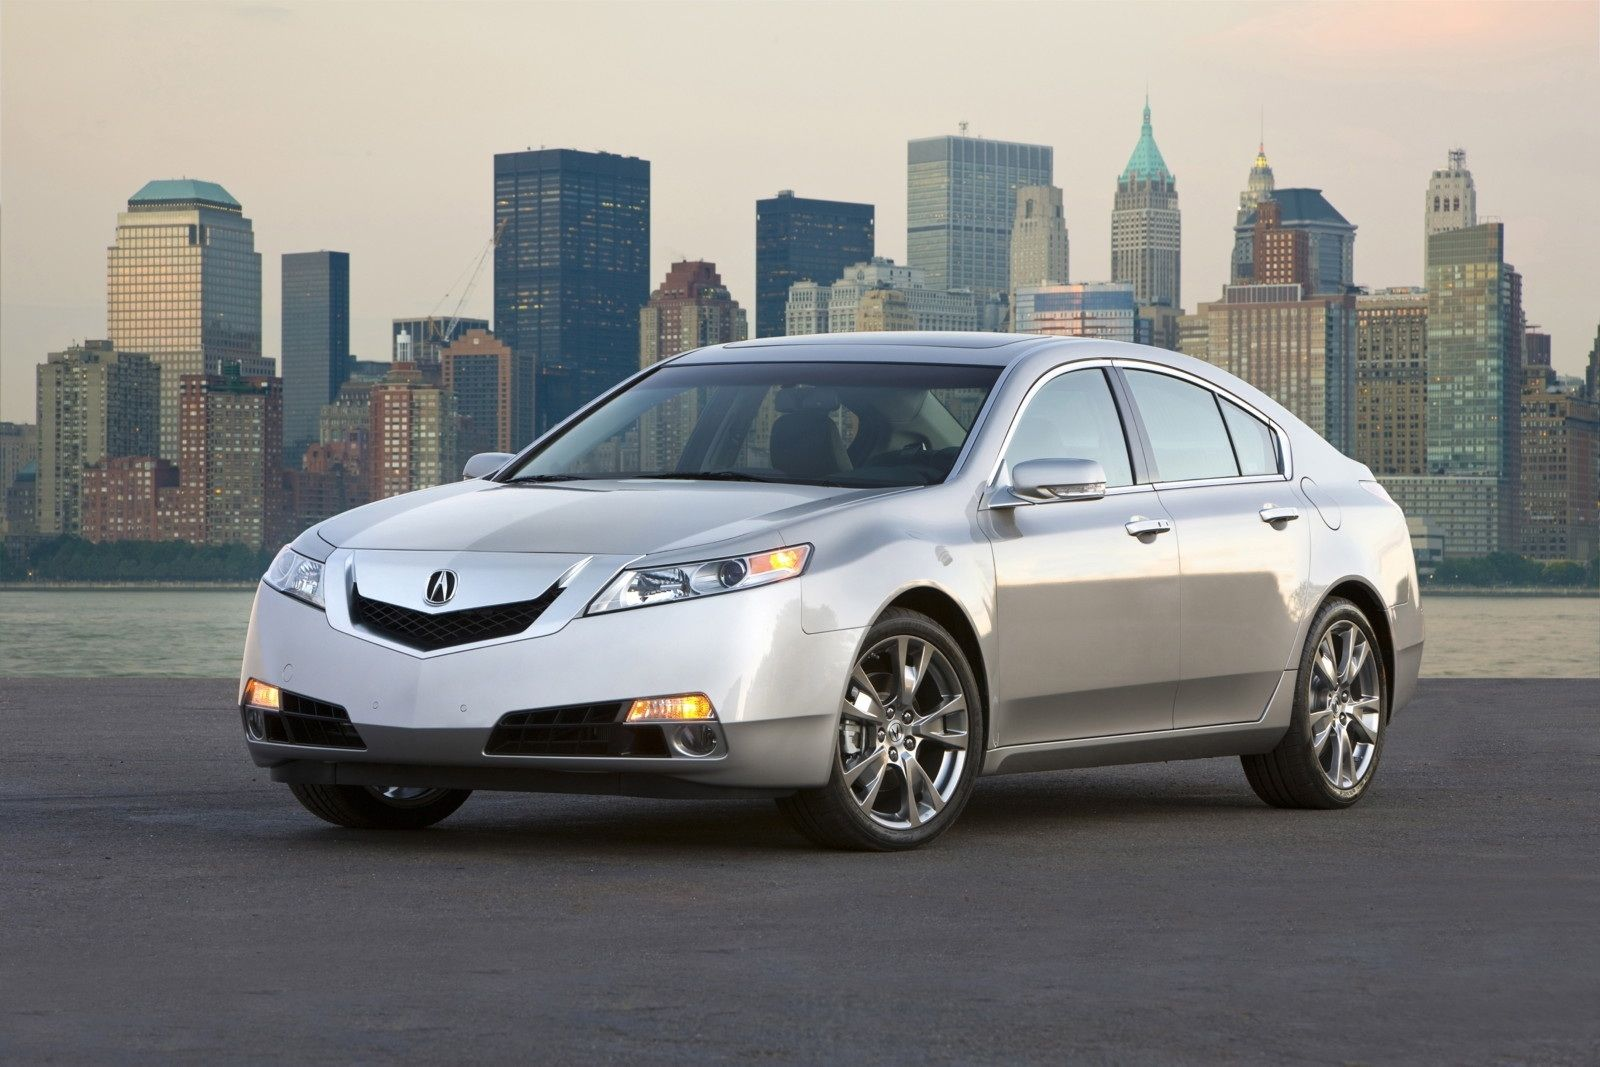 2020 Acura Tl Type S Wallpaper Redesign And Price Acura Tl Acura City Car